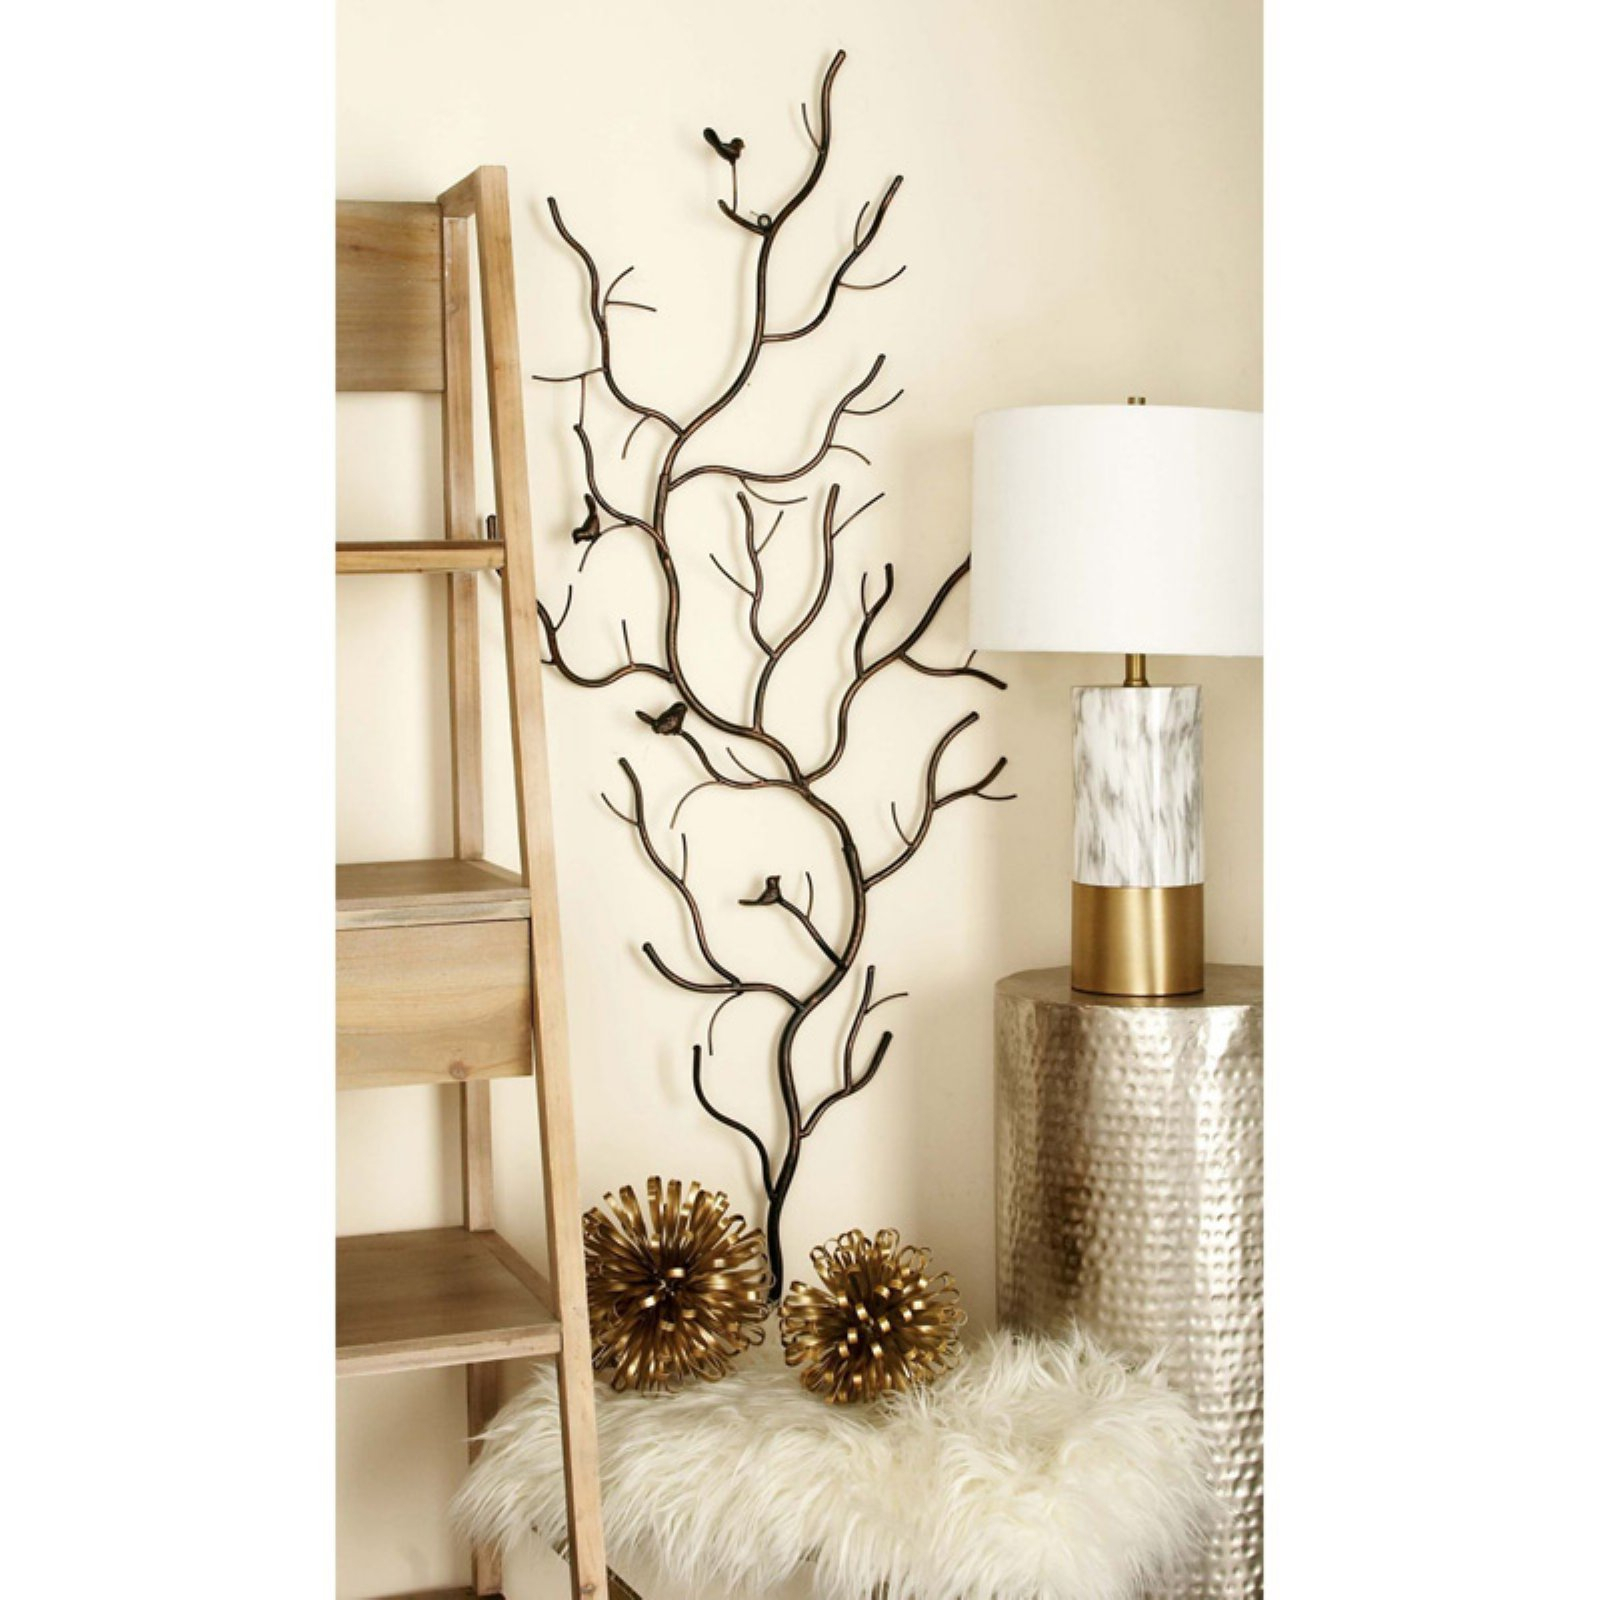 Decmode Metal Wall Sculpture – Branch & Birds | Products In For Leaves Metal Sculpture Wall Decor By Winston Porter (View 11 of 30)